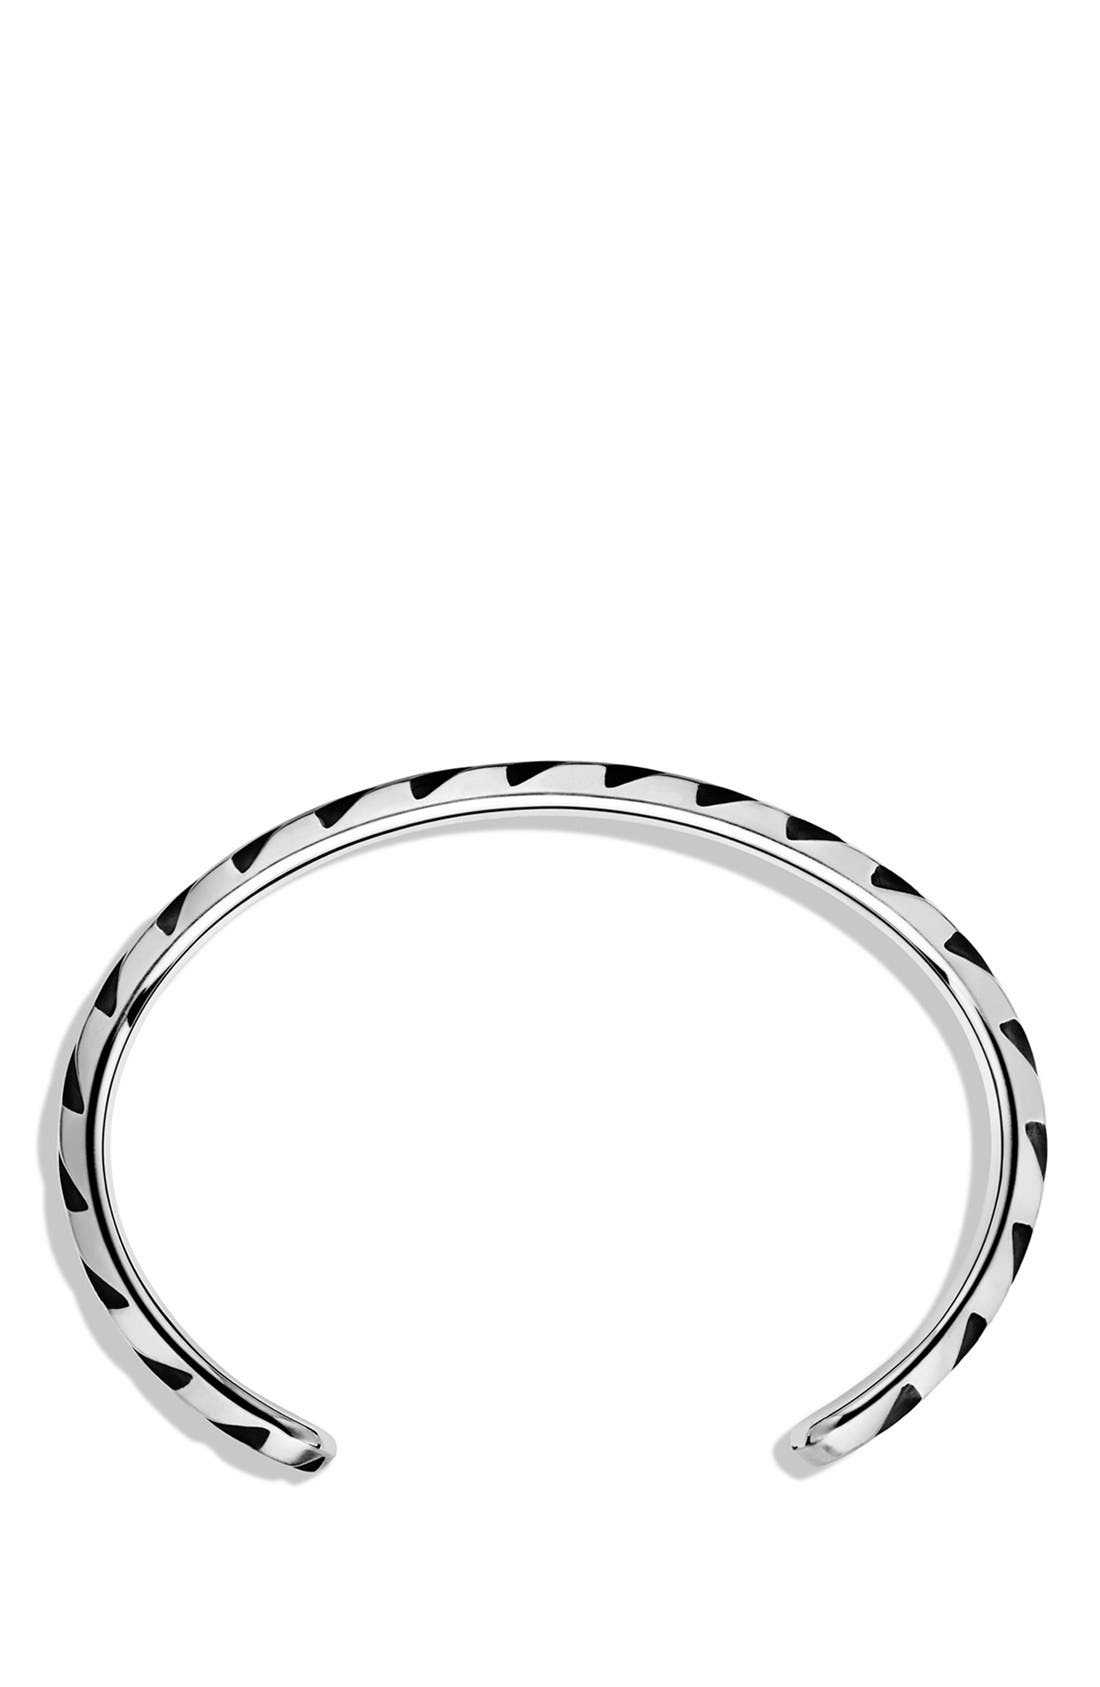 Alternate Image 2  - David Yurman 'Cable' Modern Cable Cuff